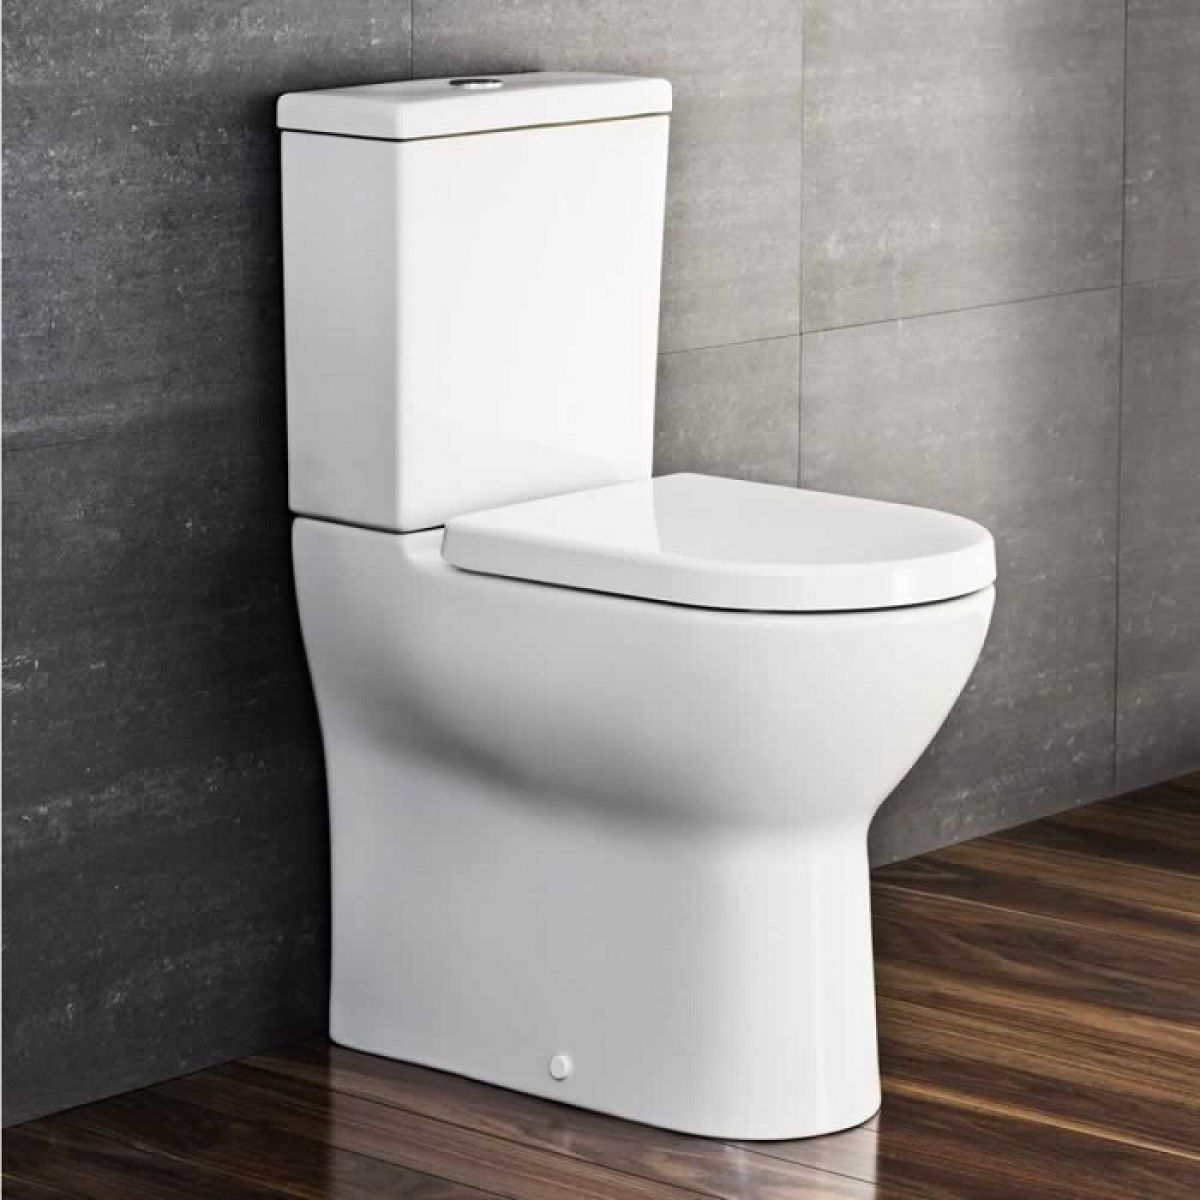 VitrA S50 Raised Height Close Coupled WC Toilet, Comfort